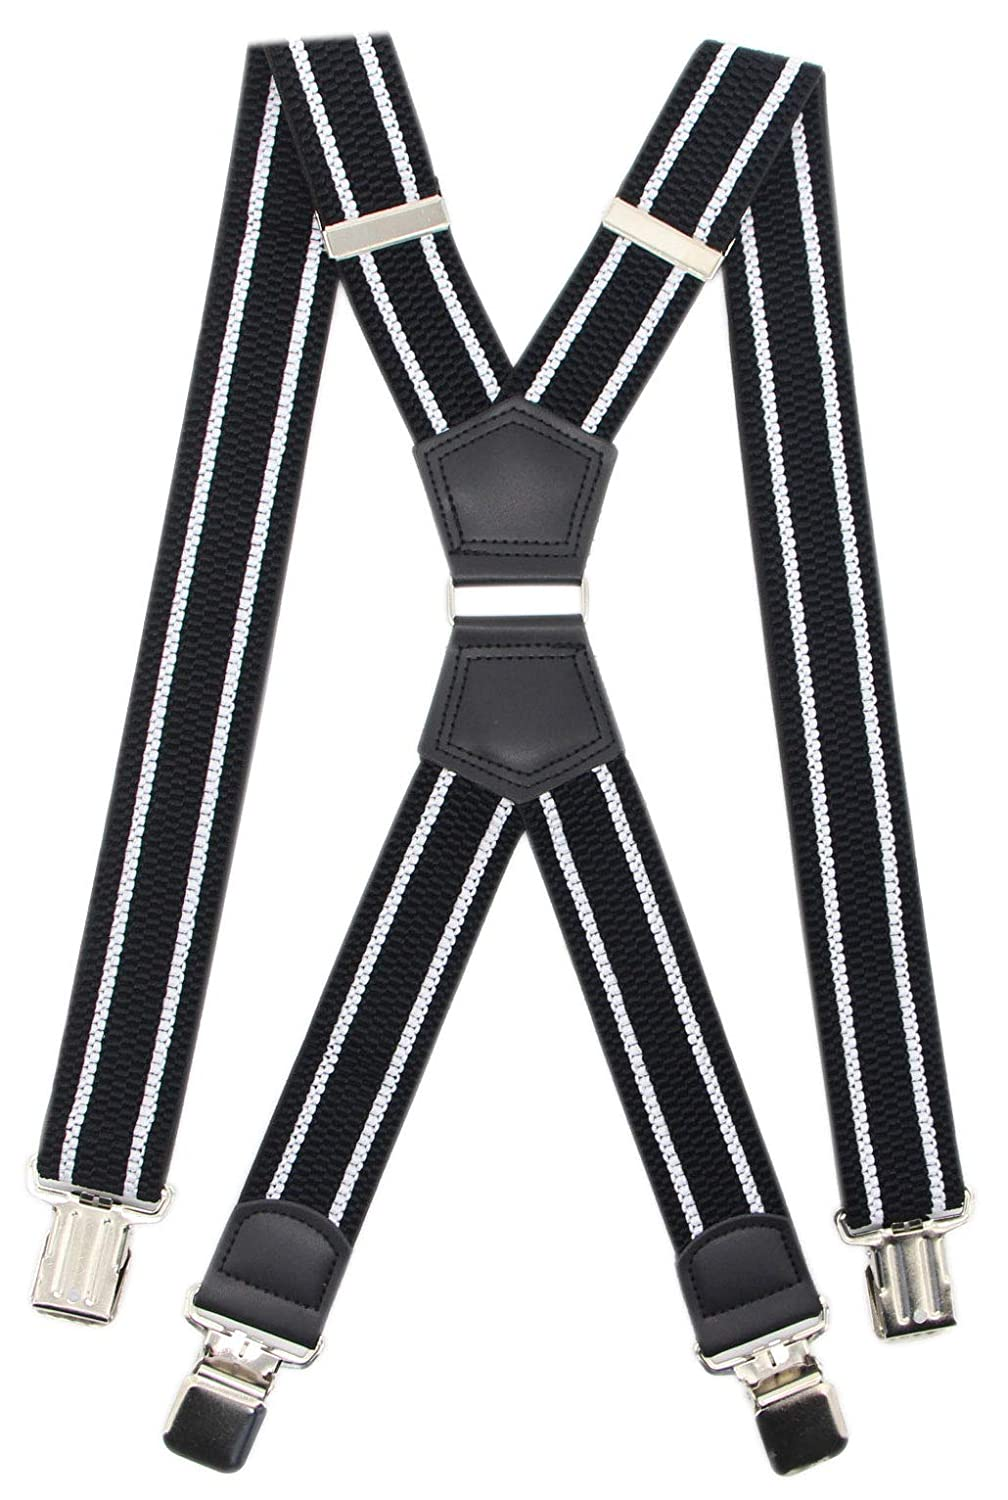 Mens Big Tall Super Strong Clips Wide Suspender X Back Heavy Duty Braces,Pefect For Work/&Casual